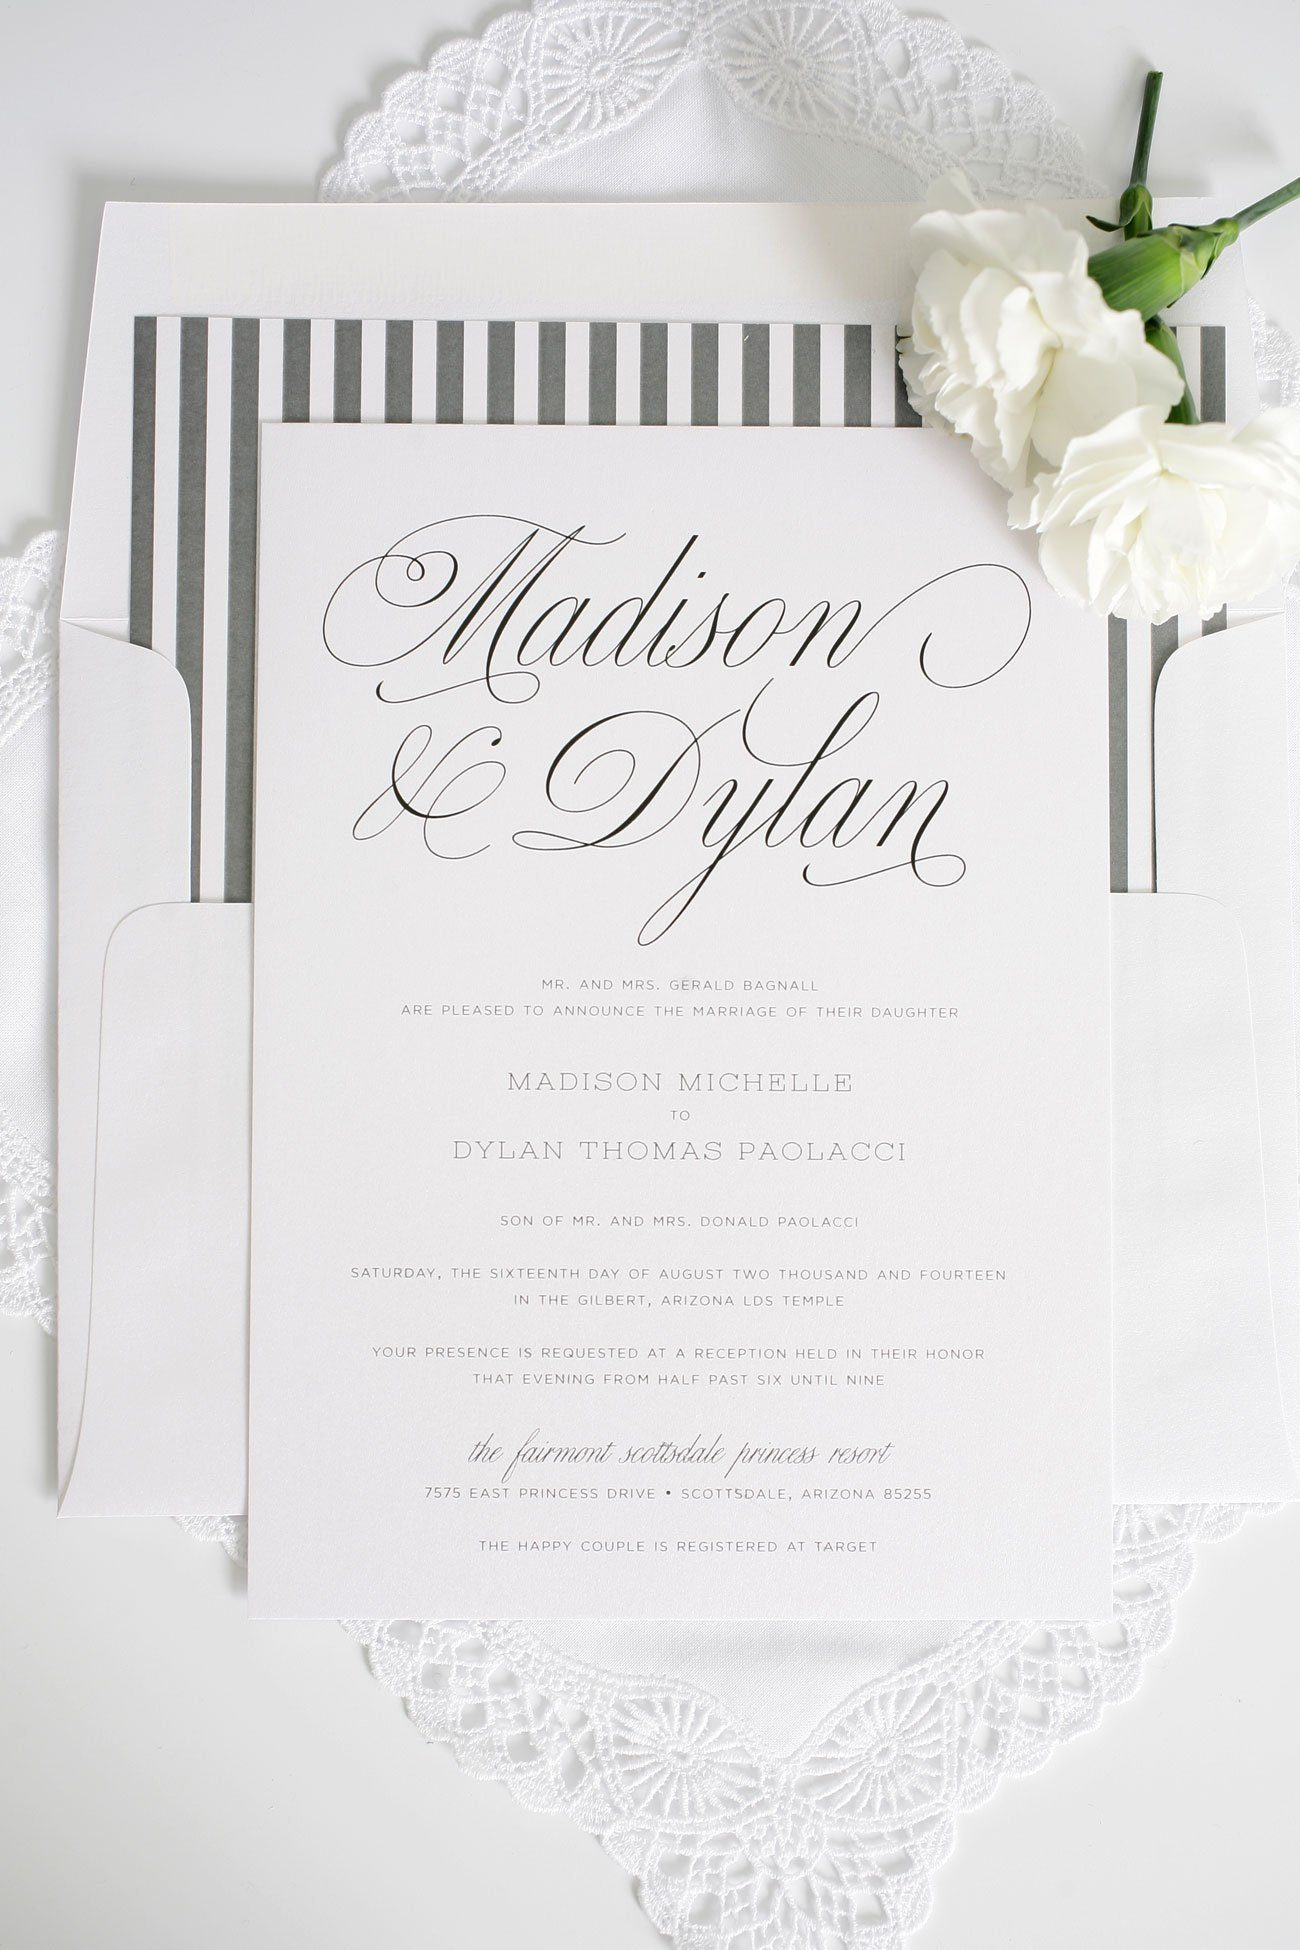 garden script wedding invitations in charcoal gray